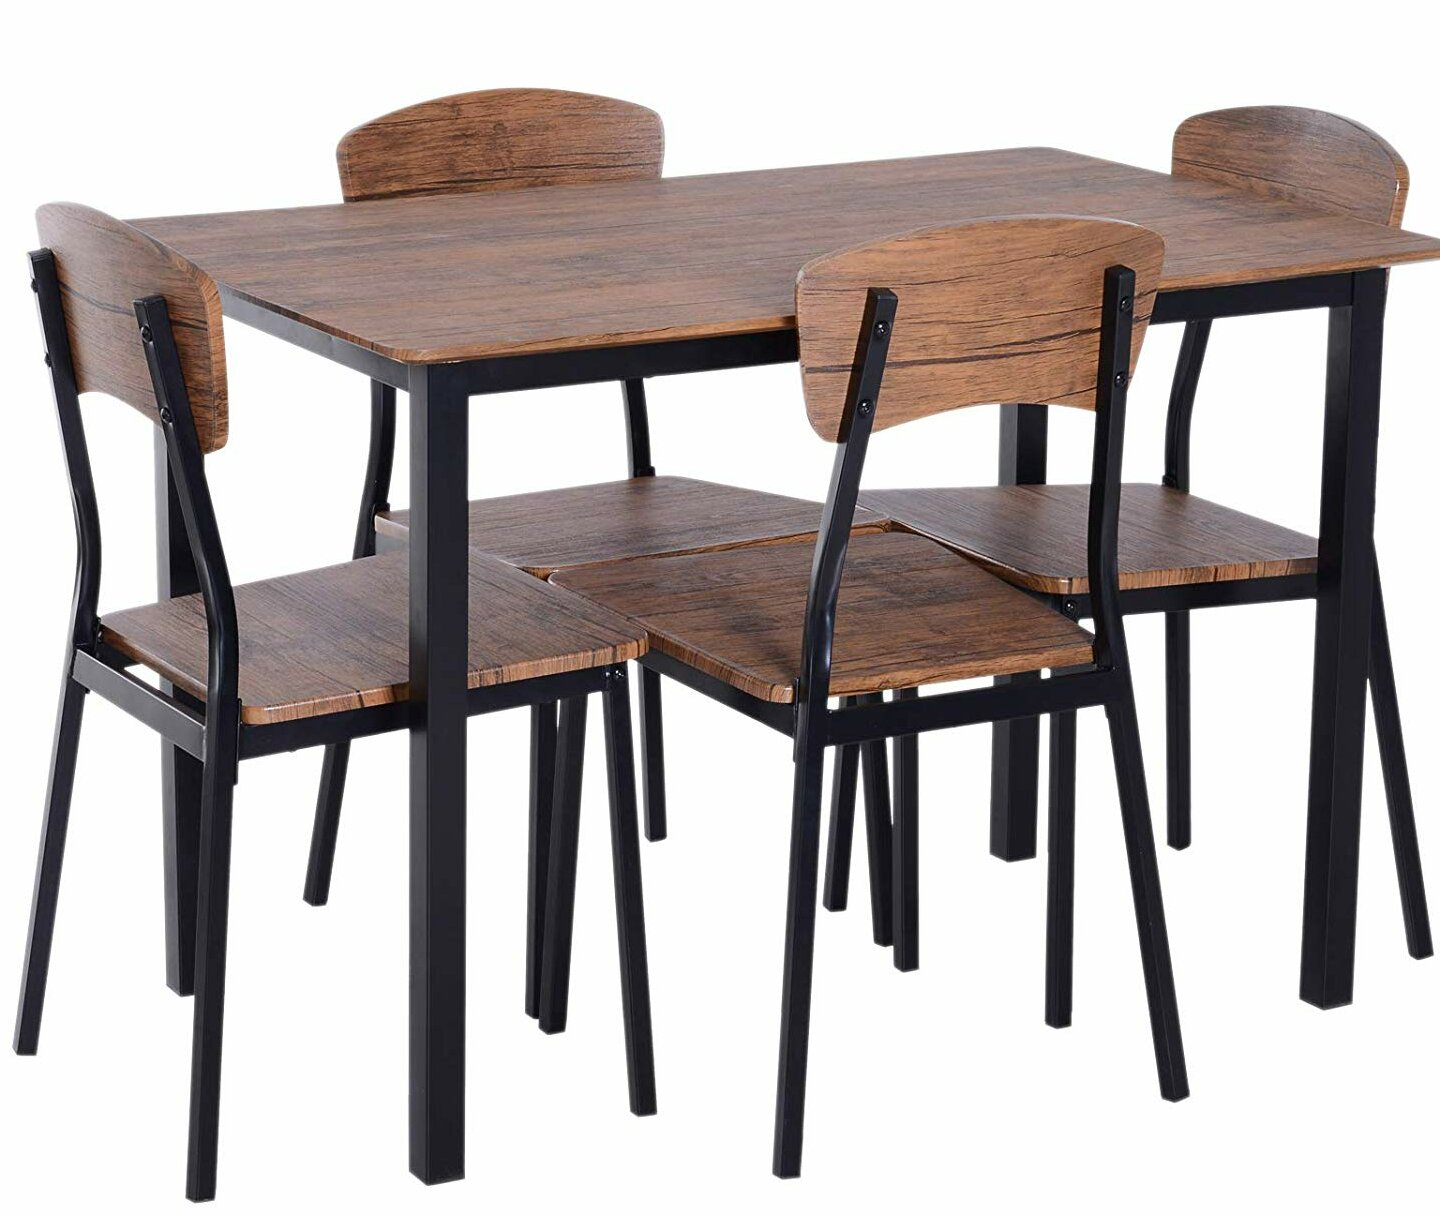 Castellanos Modern 5 Piece Counter Height Dining Set With 2017 Castellanos Modern 5 Piece Counter Height Dining Sets (Photo 1 of 20)